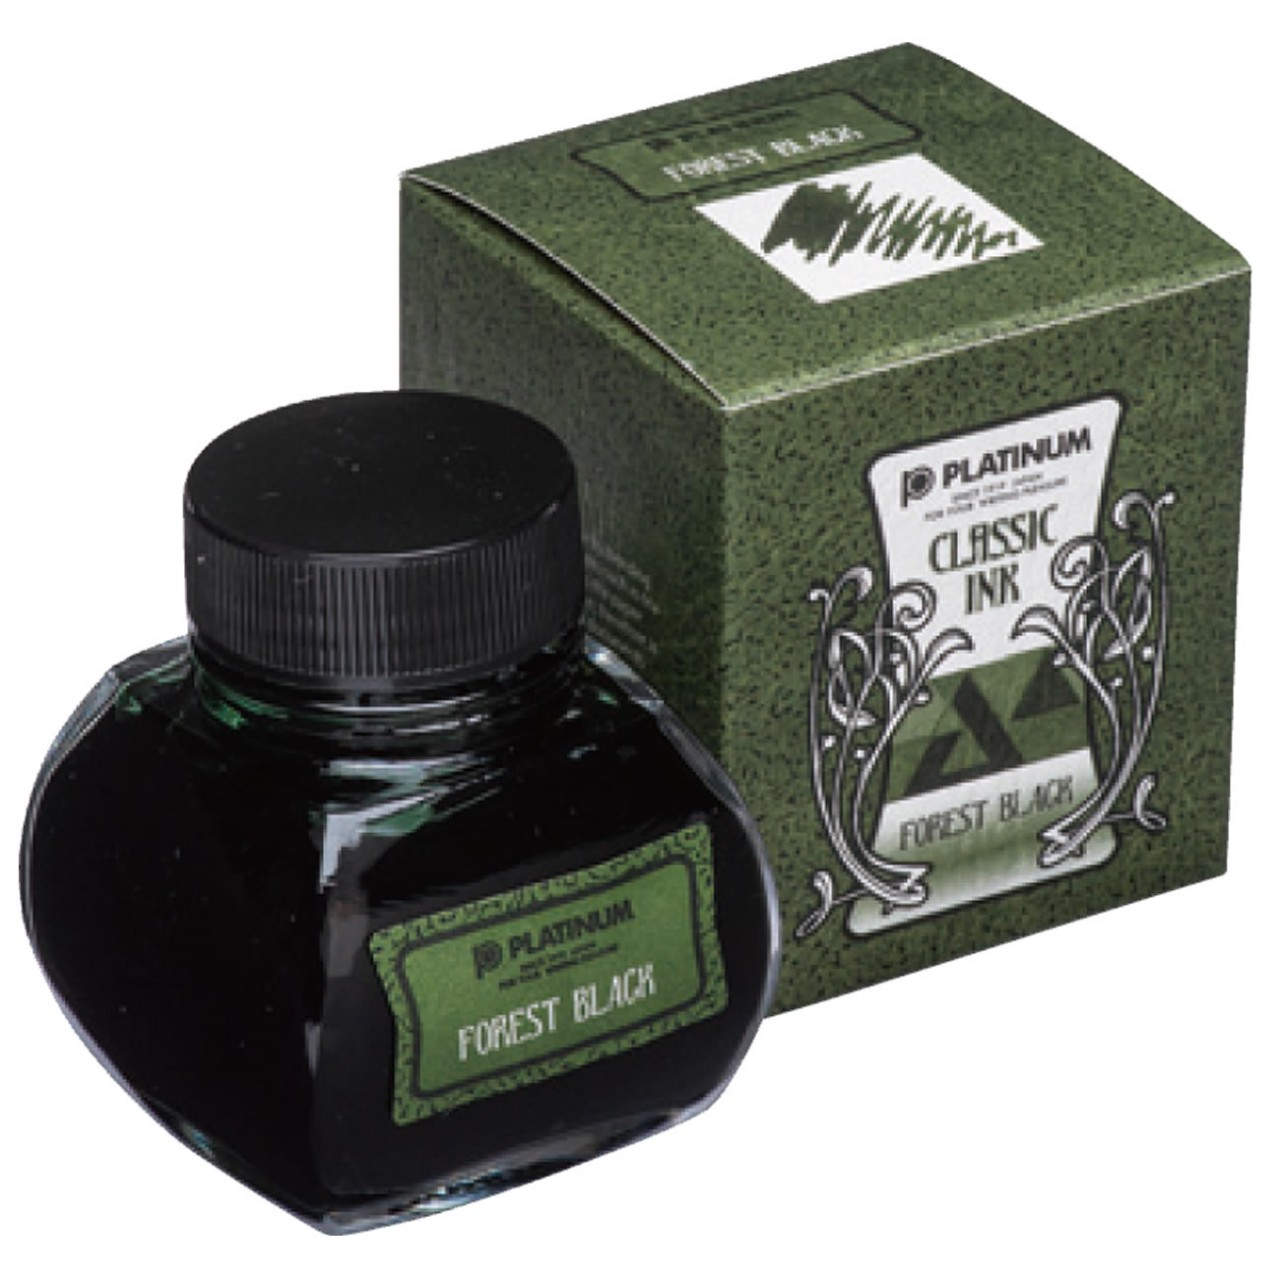 Platinum Dyestuff 'Classic Ink' Forest Black